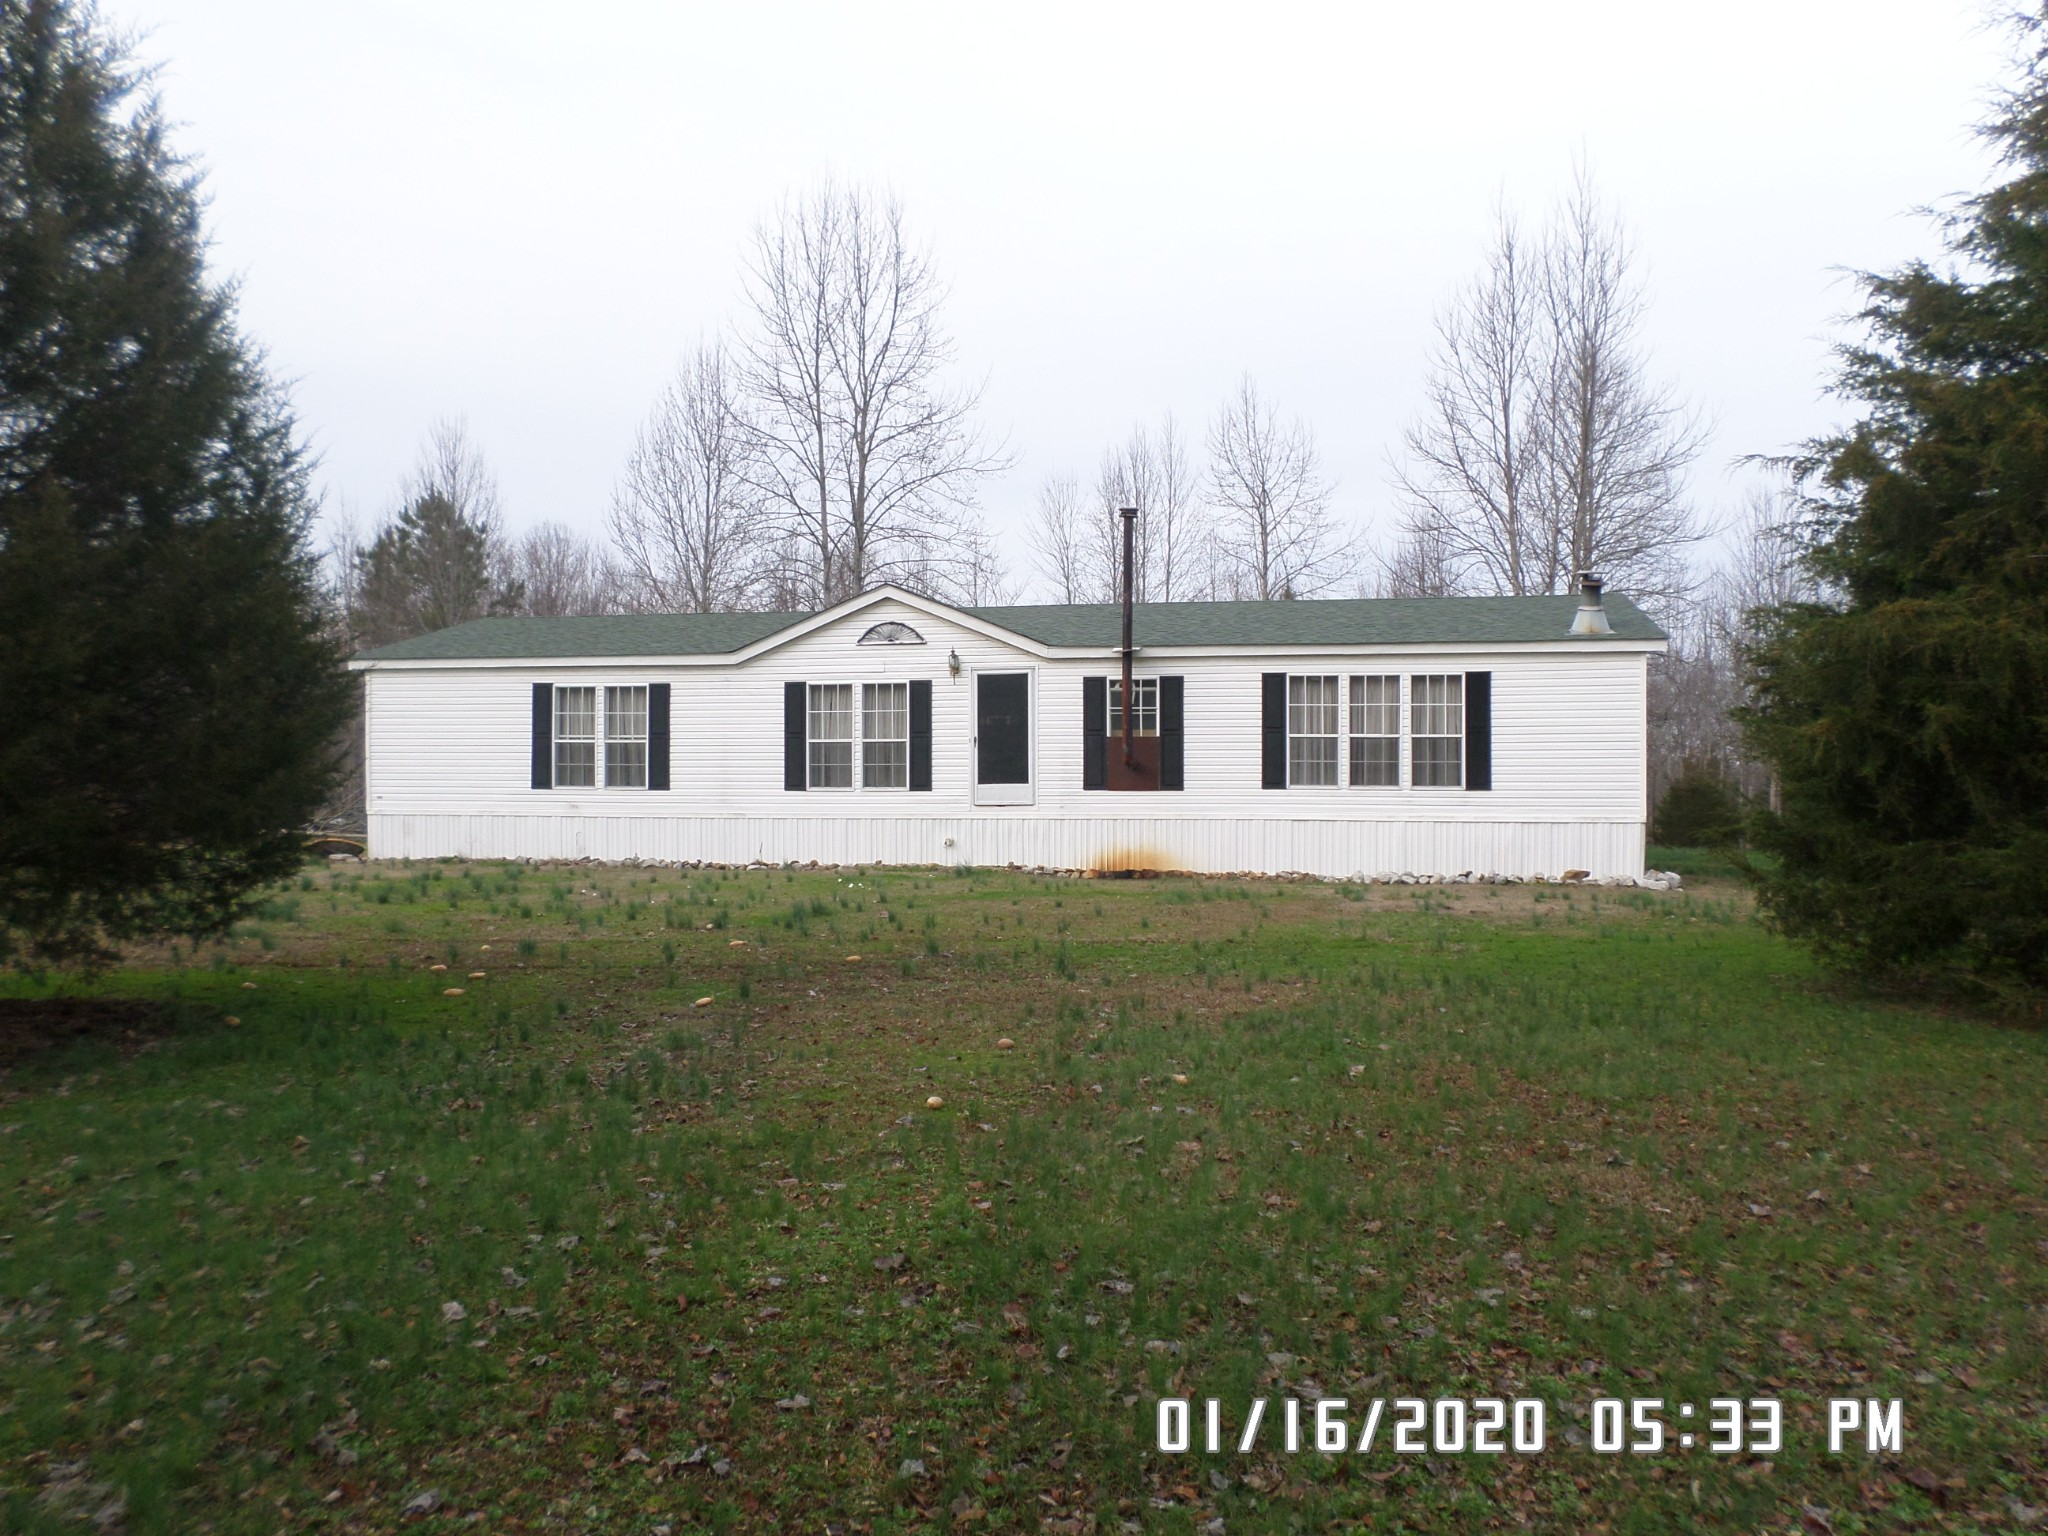 614 Fairview Rd, Loretto, TN 38469 - Loretto, TN real estate listing